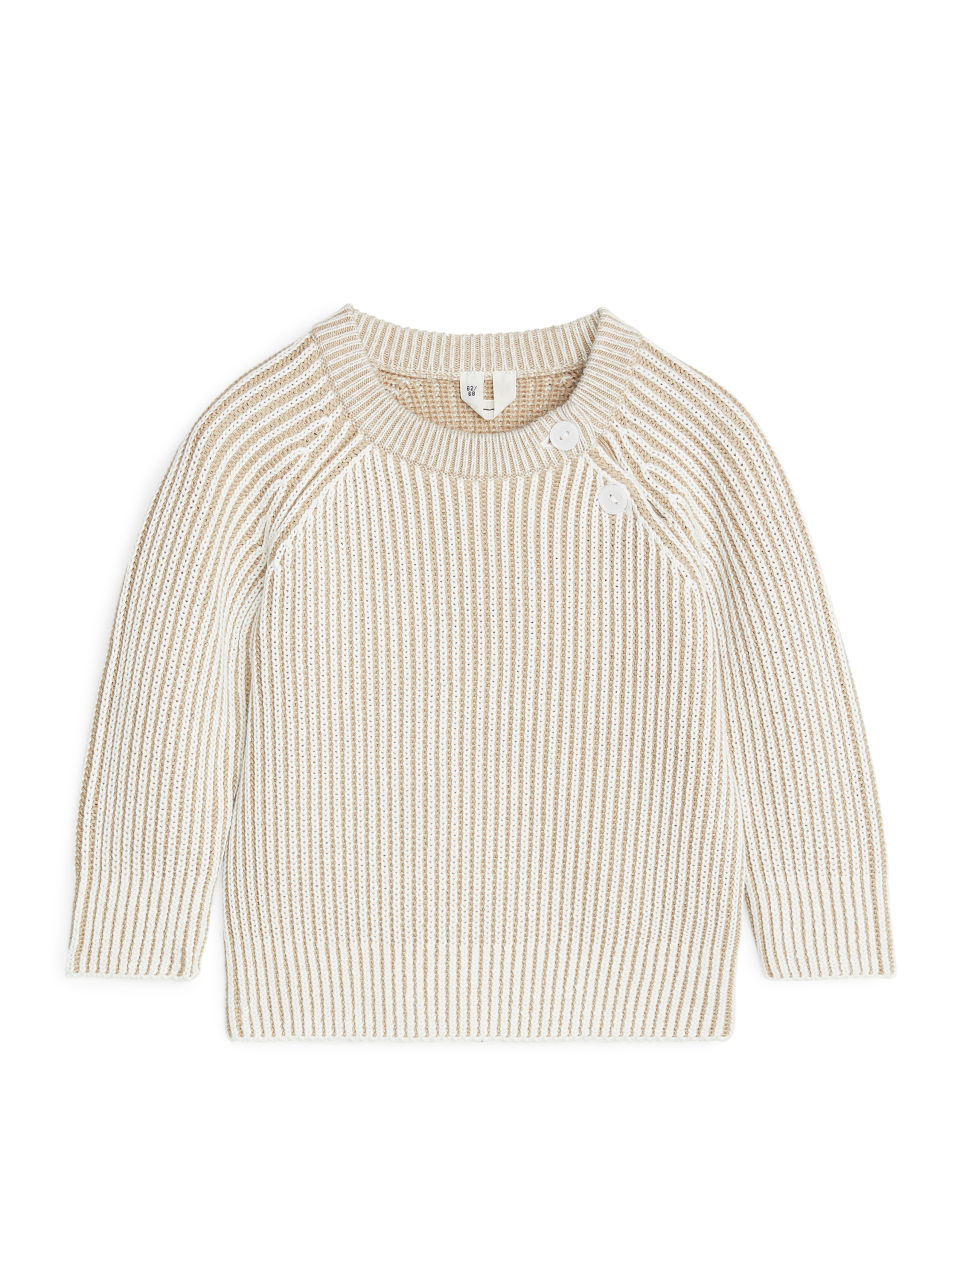 Two Toned Jumper - White